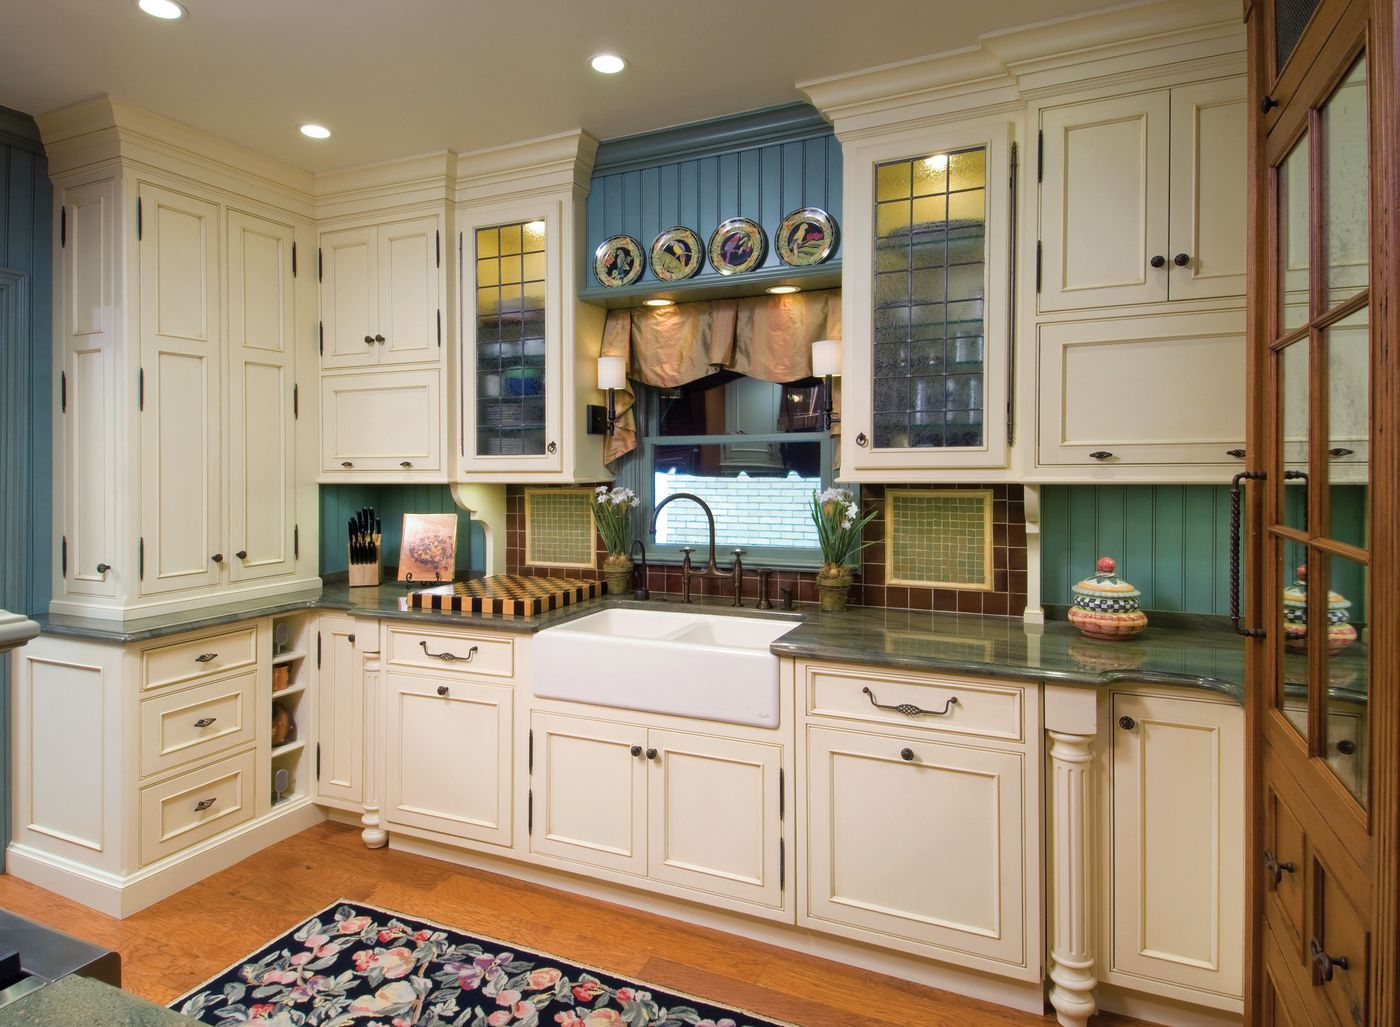 10 Big Ideas For Small Kitchens In 2020 Kitchen Design Styles Kitchen Design Kitchen Design Small